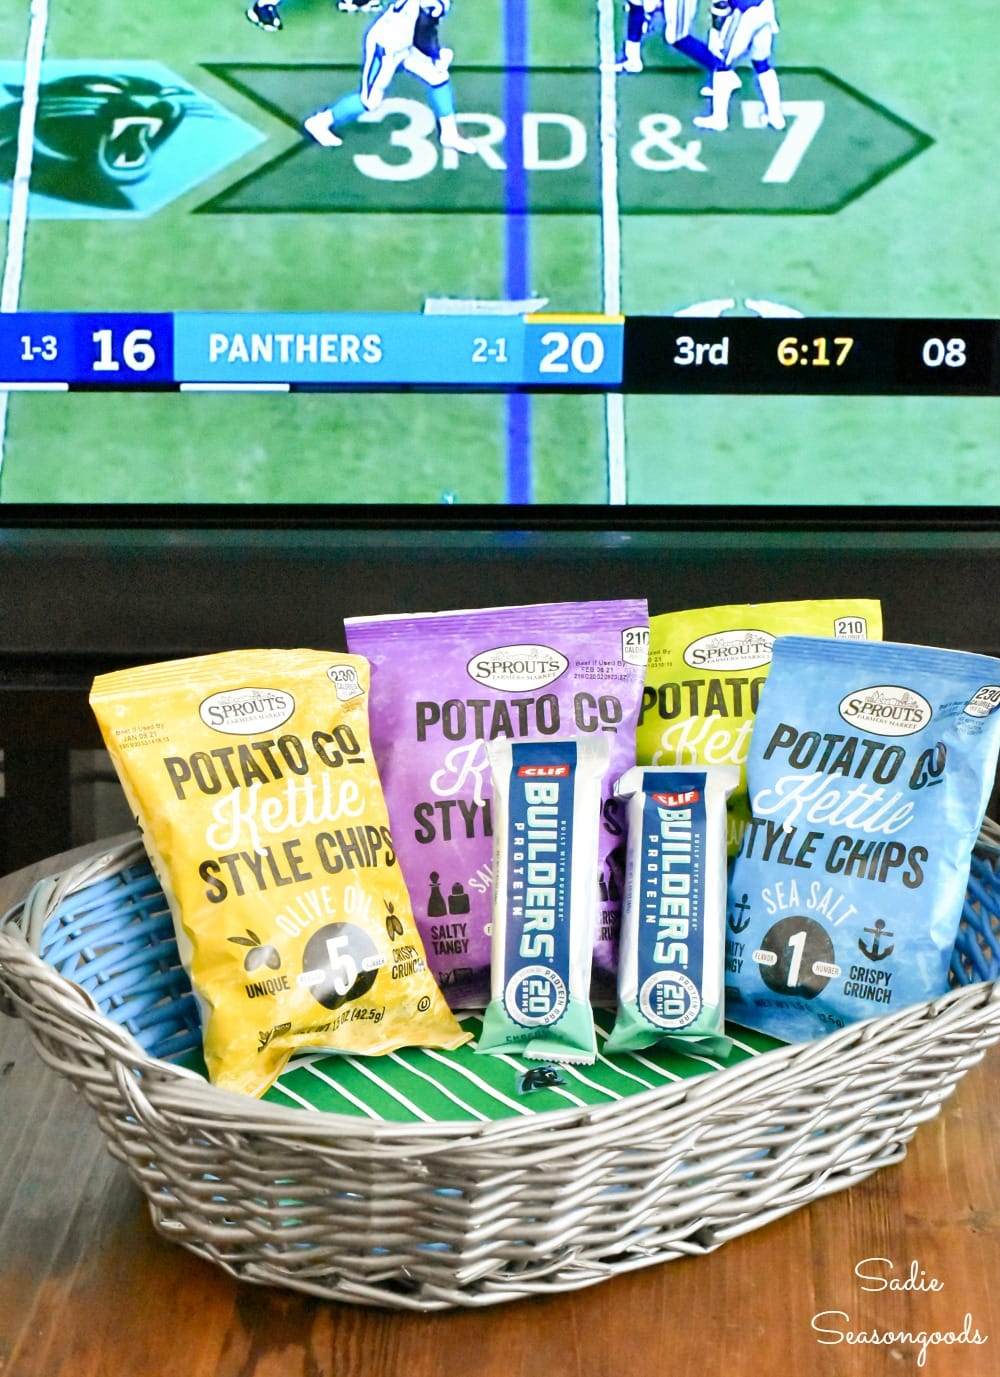 Game Day decor for social distance tailgating